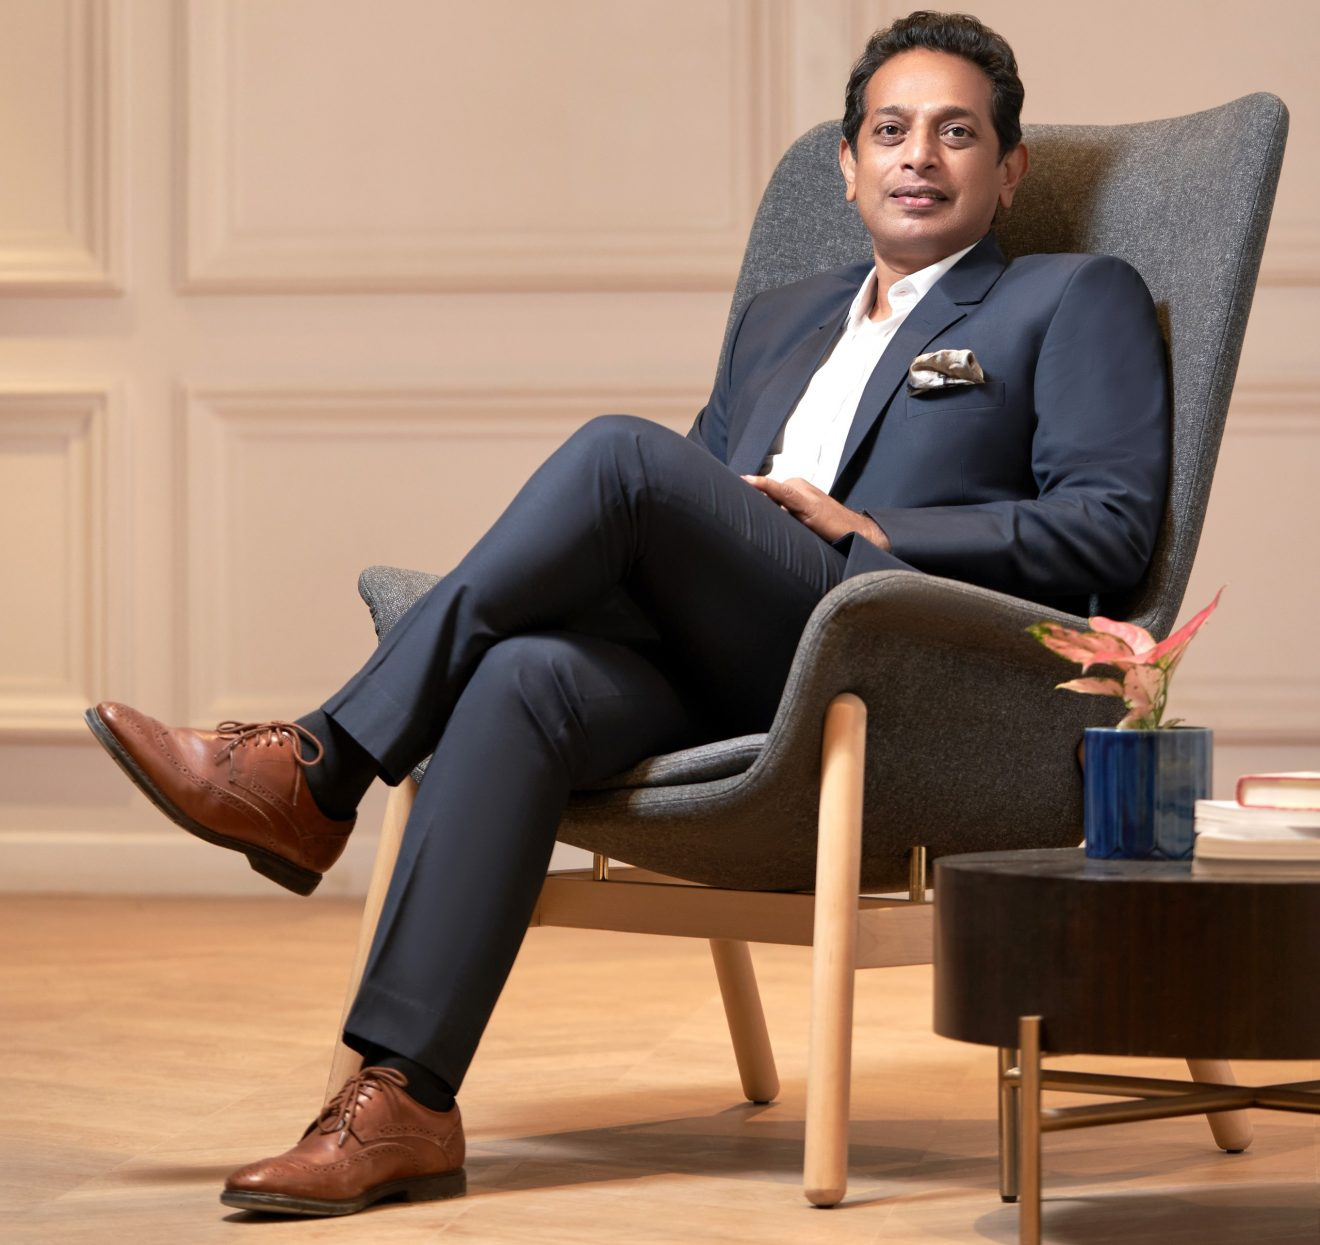 Gopinath Gopalan appointed as General Manager of Radisson Blu Hotel & Spa